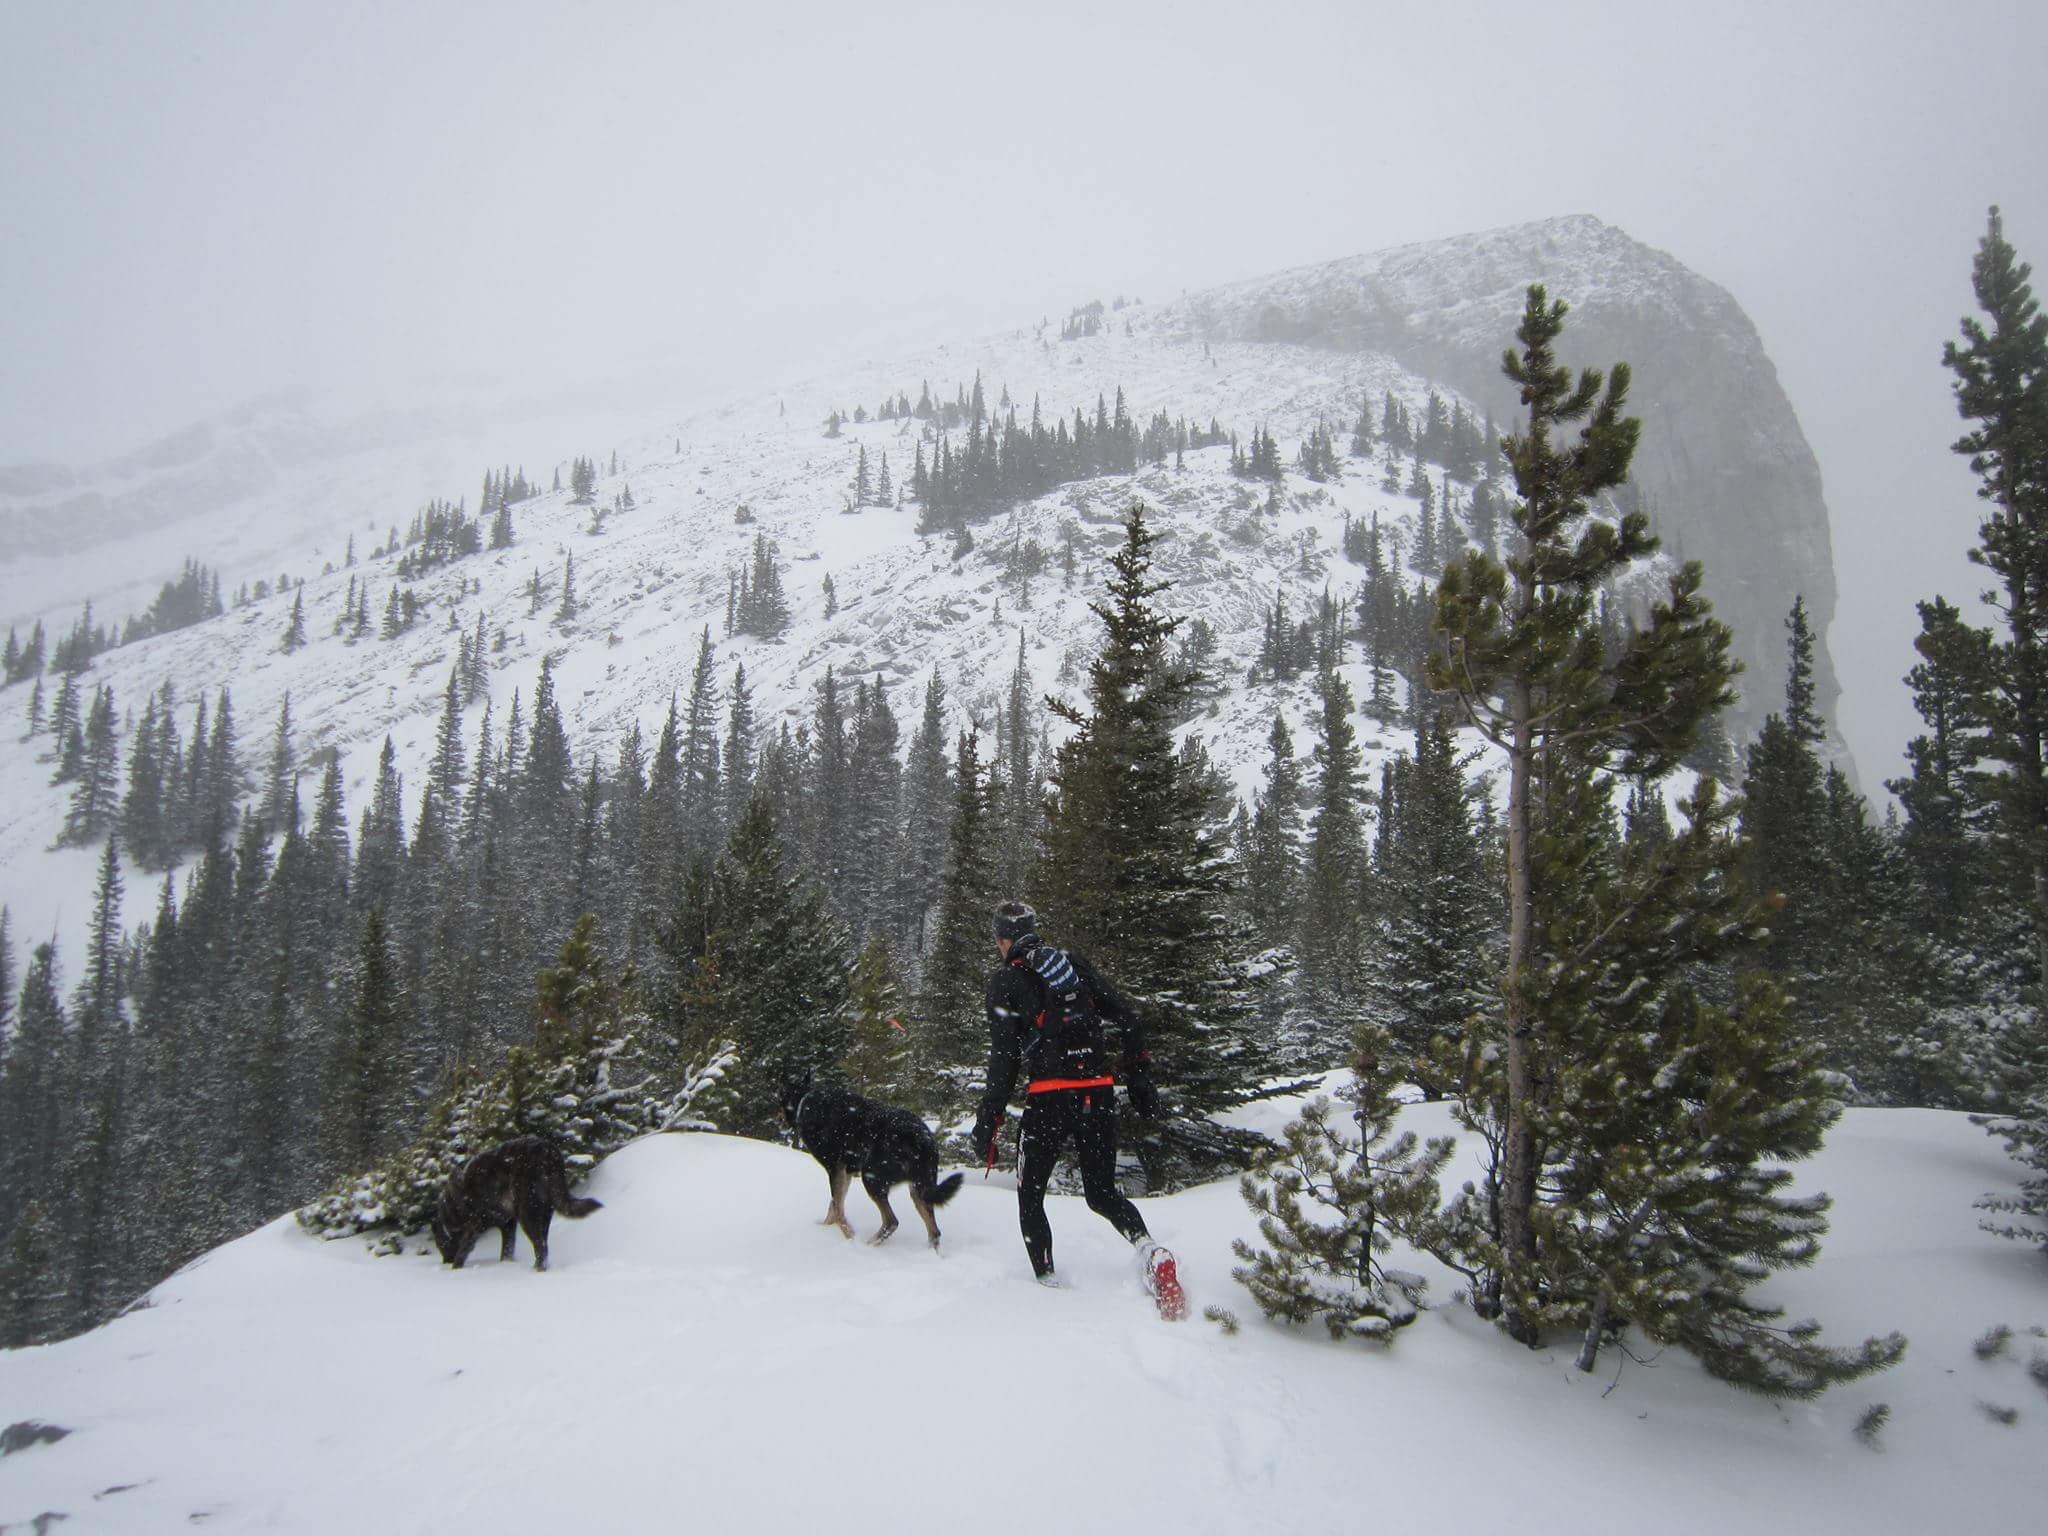 Heading up EEOR in some deep snow.